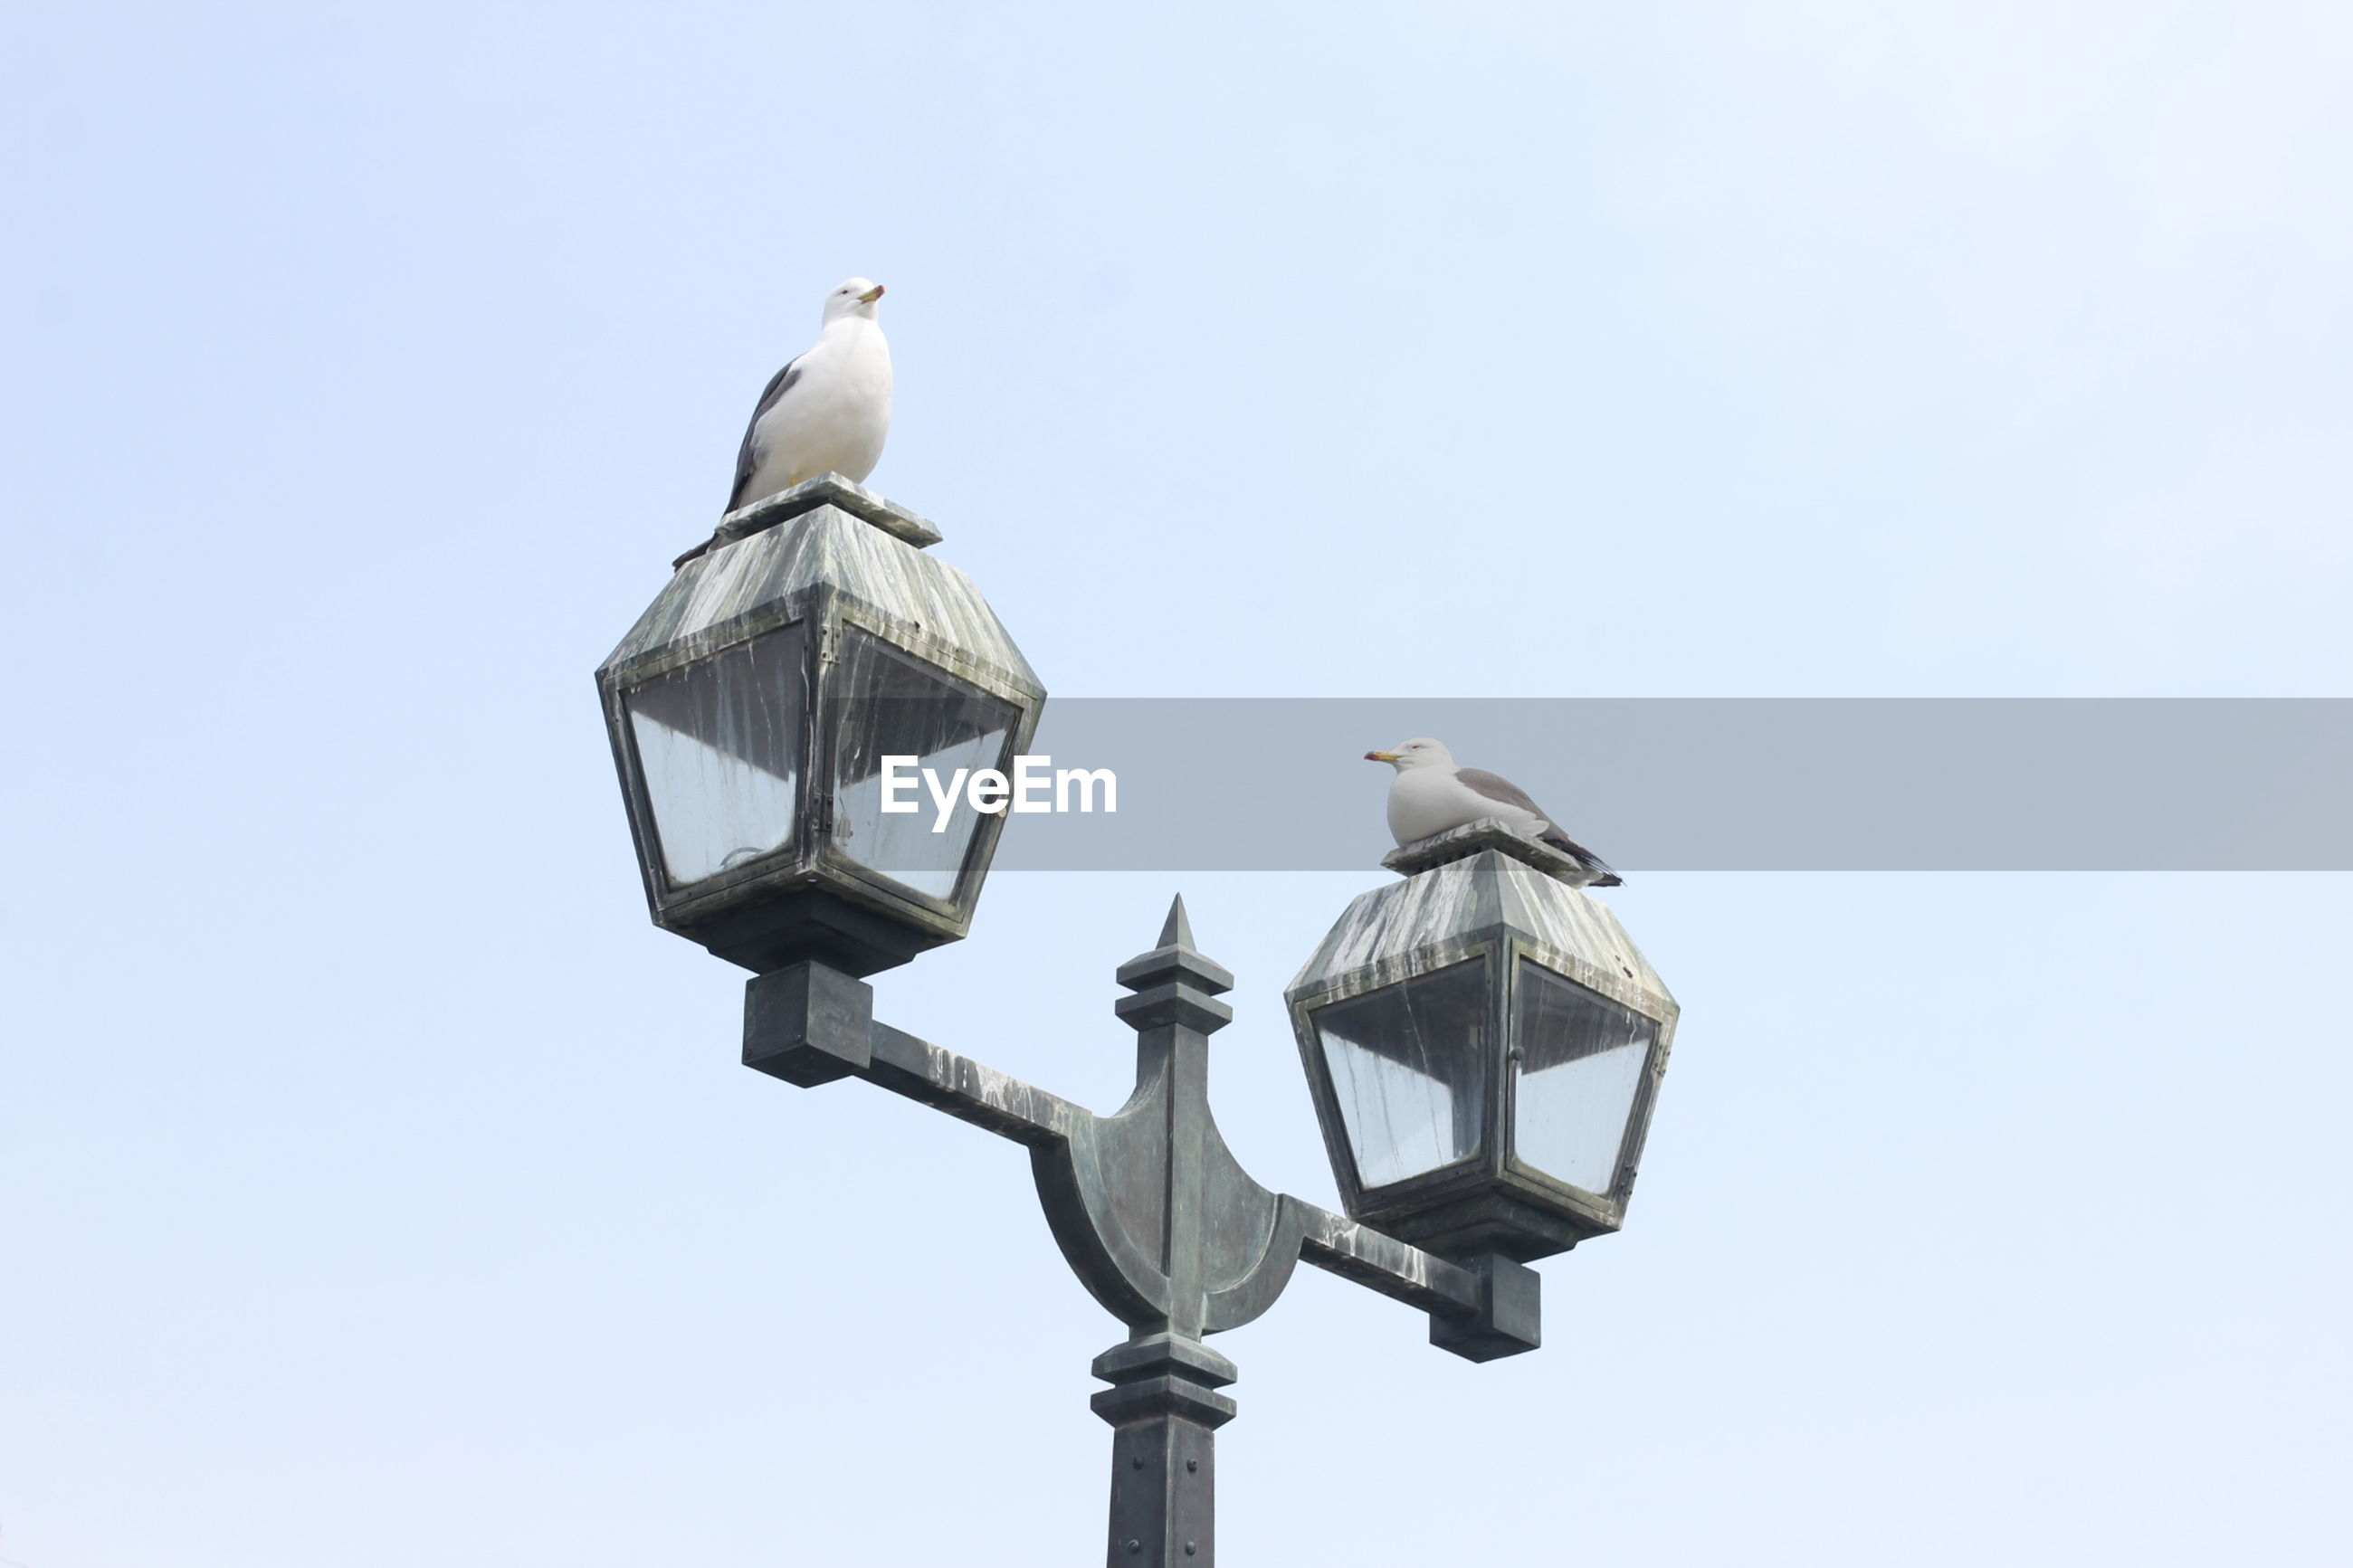 Low angle view of seagulls perching on street light